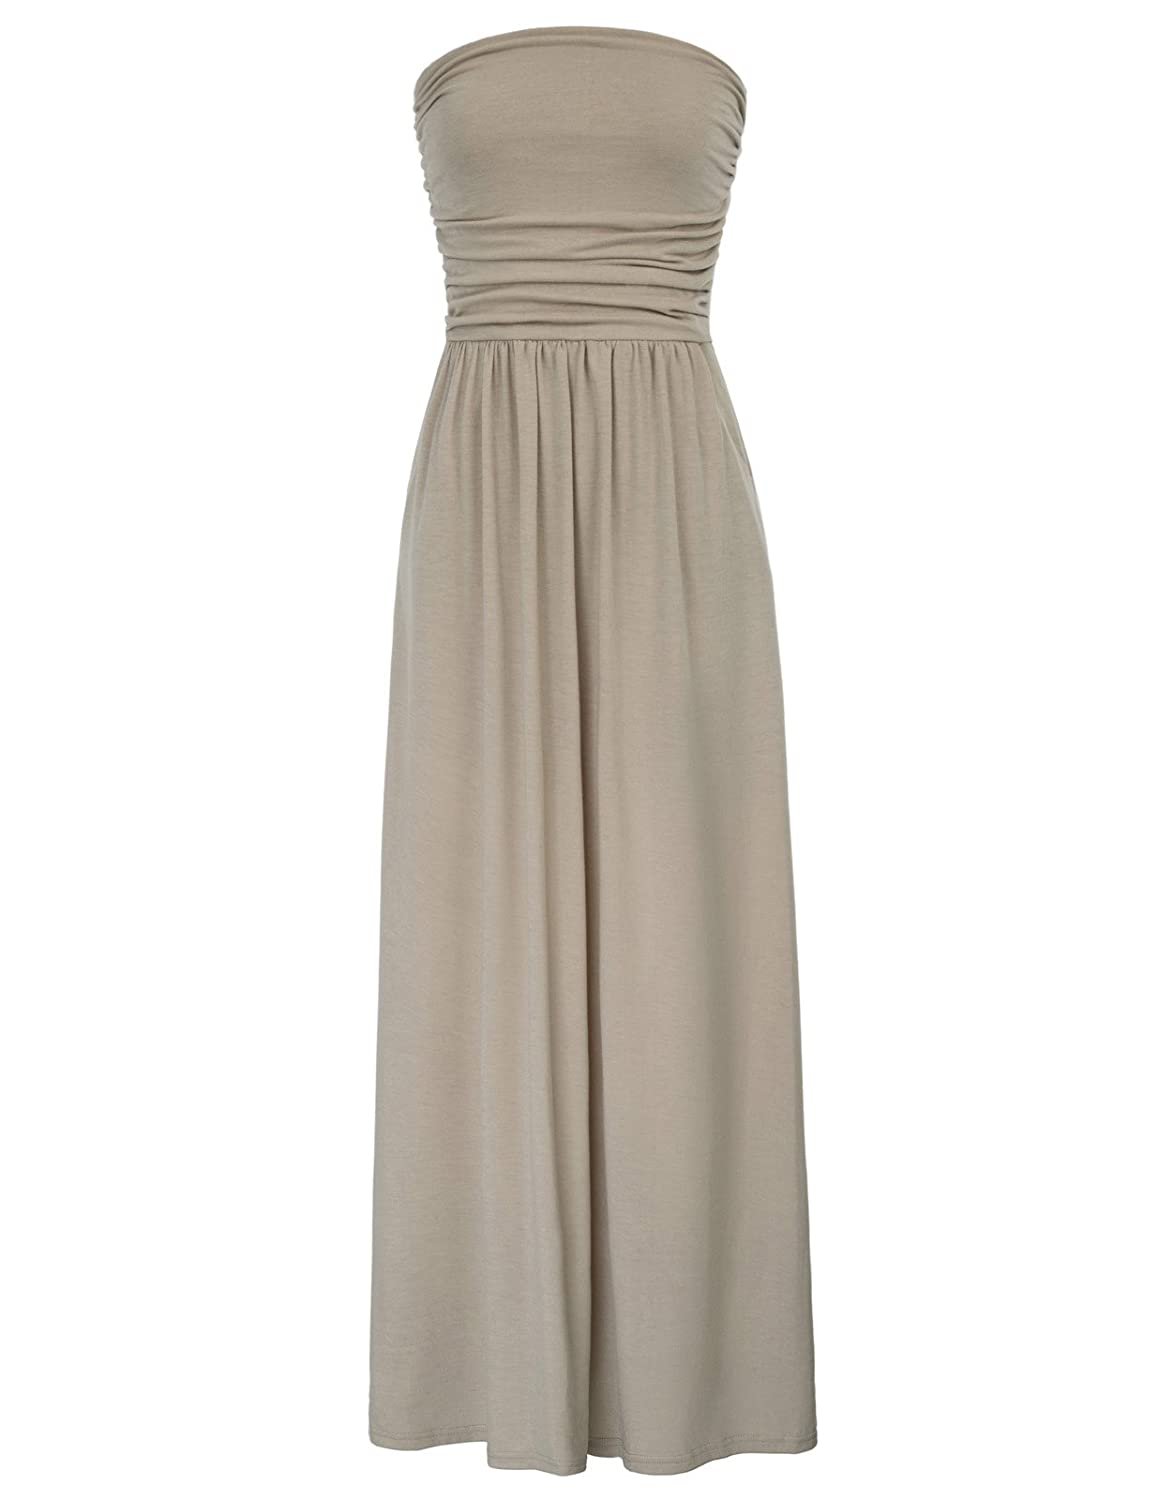 79f2dd3218 GRACE KARIN Womens Strapless Ruched Casual Maxi Dress with Pockets CLAF0224  at Amazon Women's Clothing store: